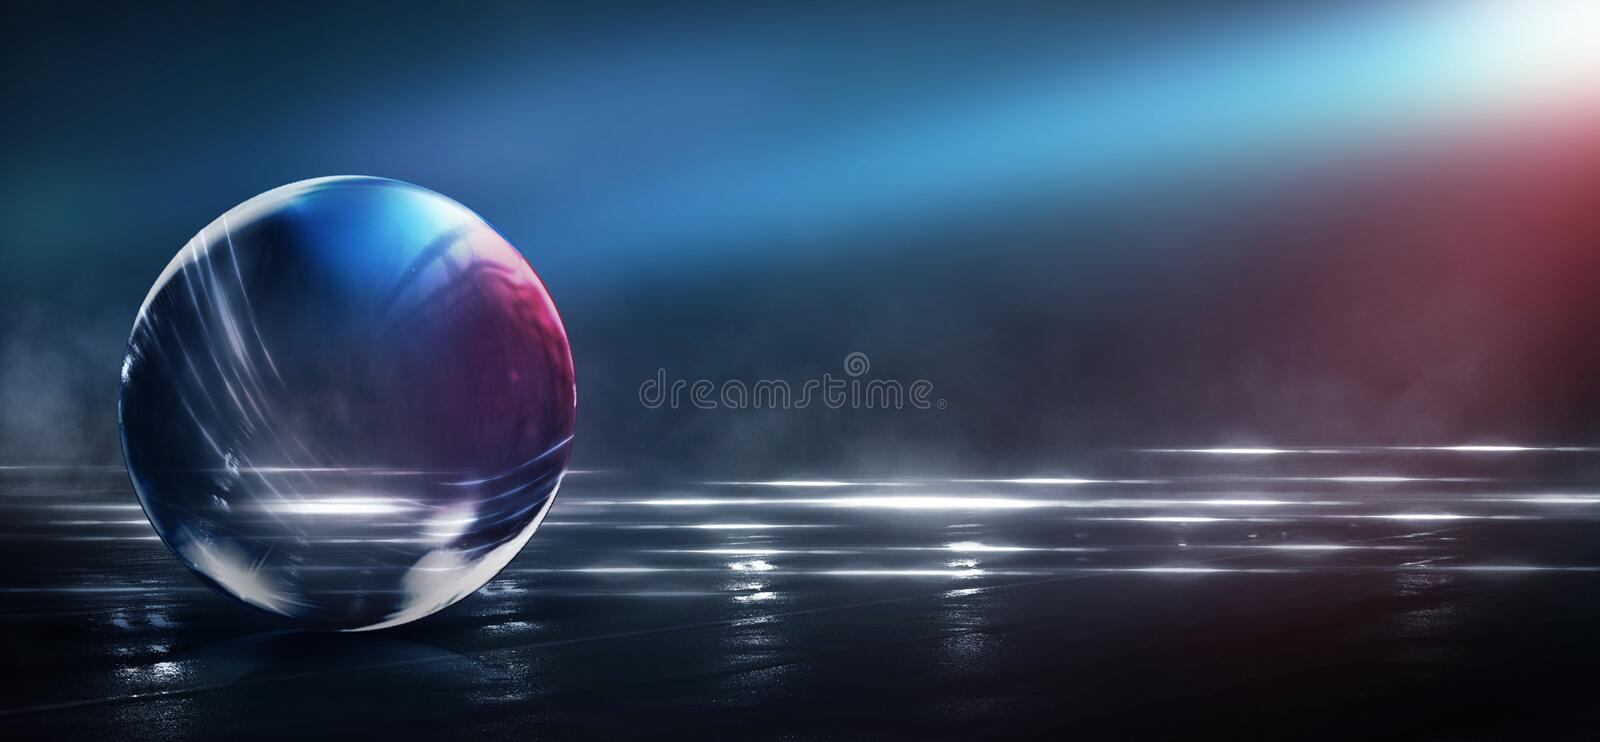 Abstract,art,astronomy,background,ball,black,blue,bright,city,color,colorful,colors,cosmos,crystal,dark,design,earth,fantasy,galax royalty free illustration